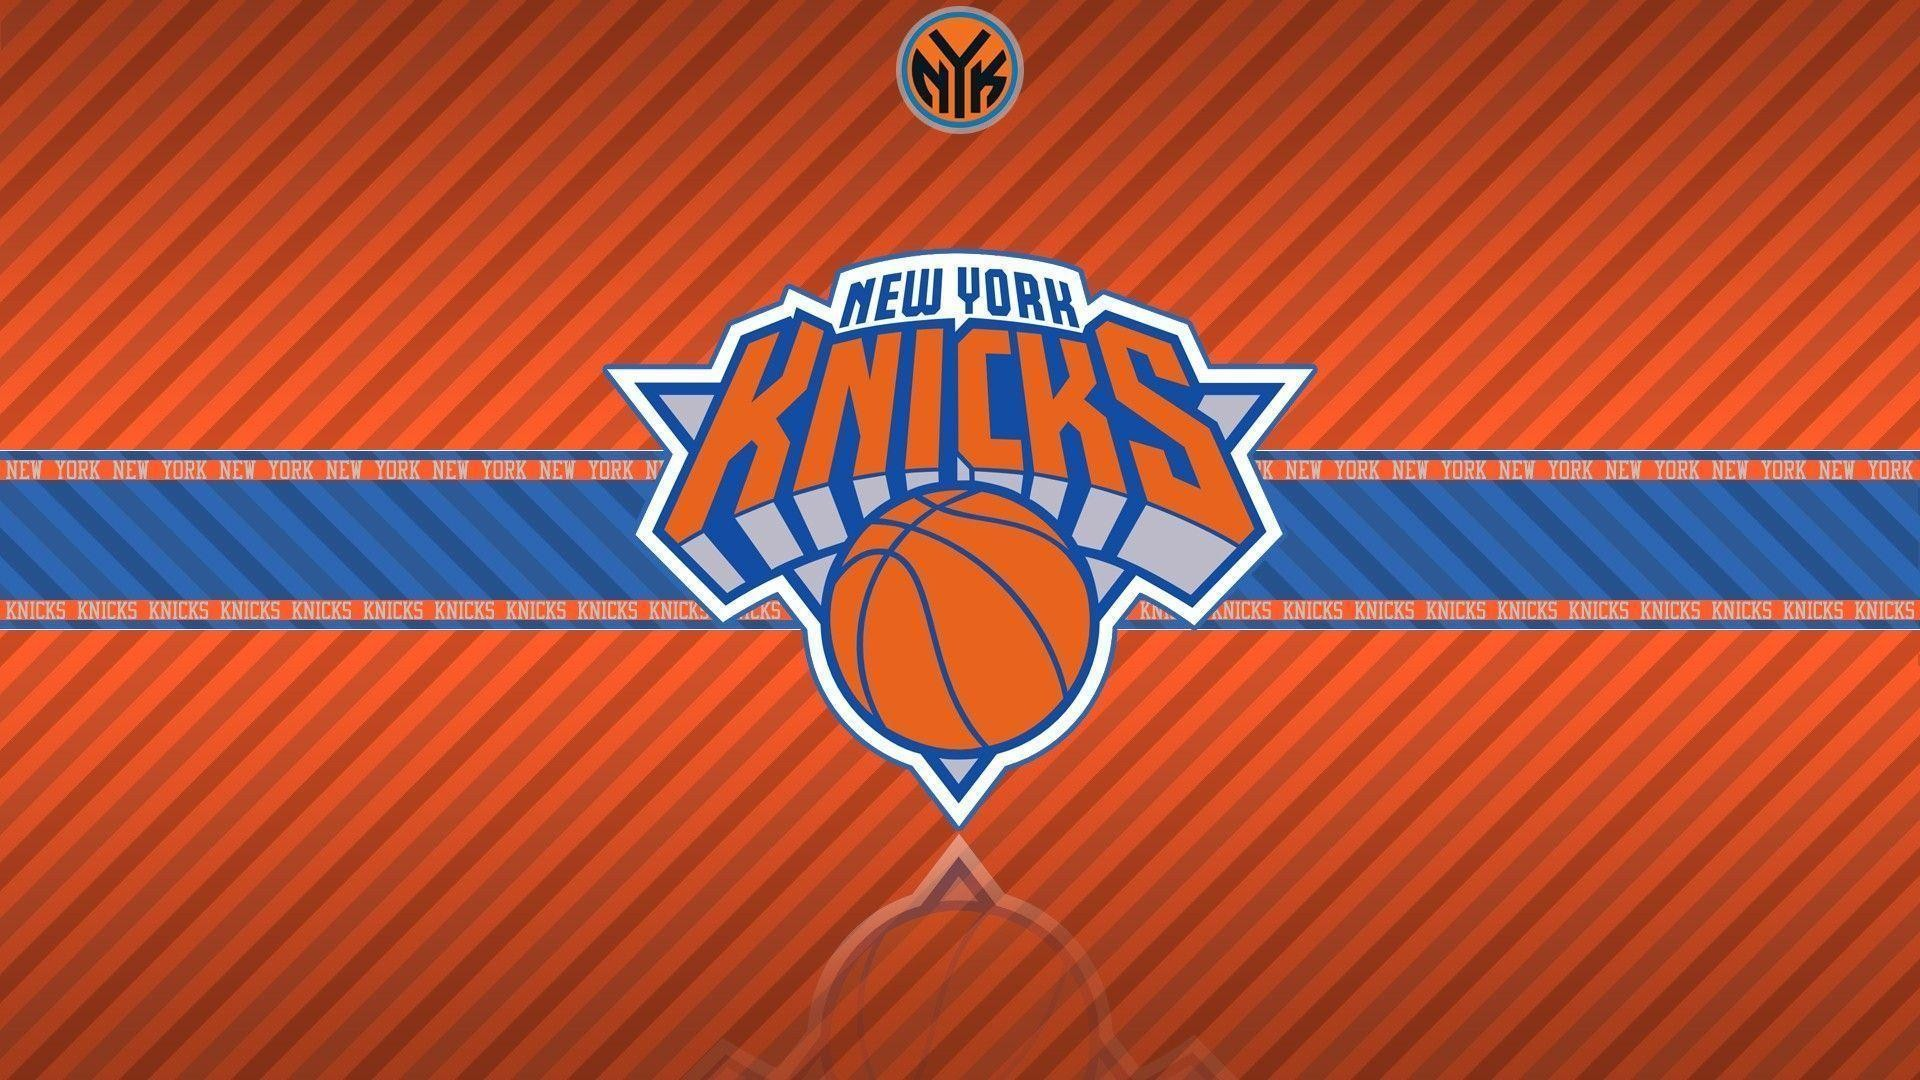 1920x1080 1 New York Knicks Wallpapers | New York Knicks Backgrounds